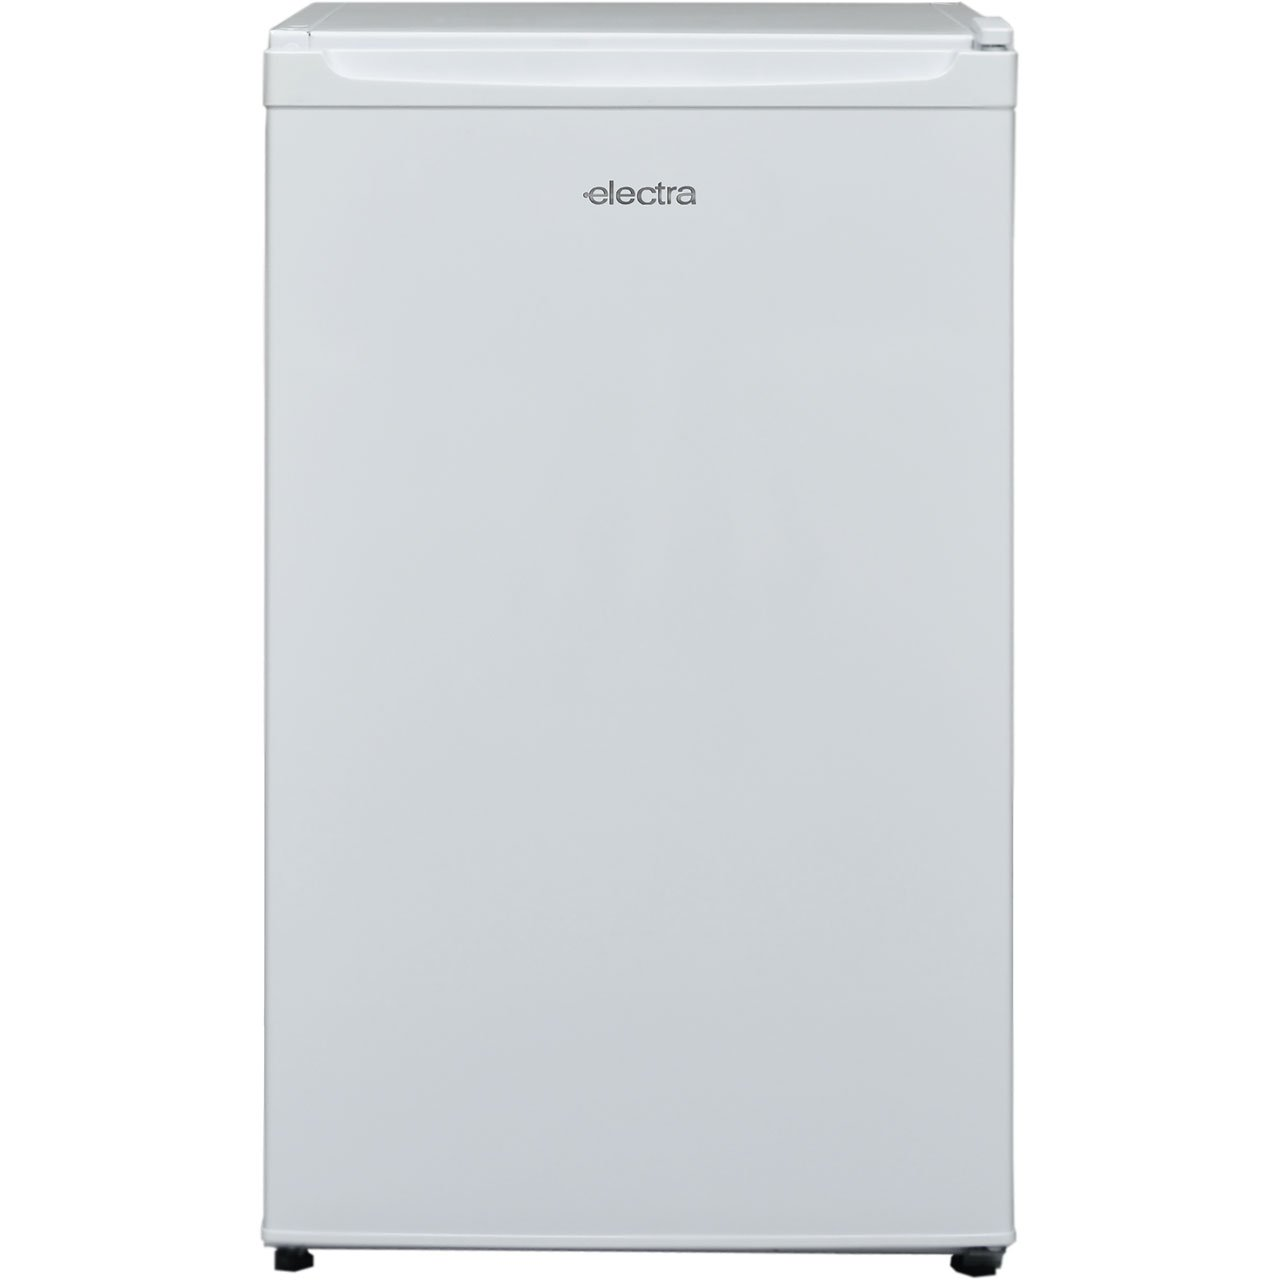 Electra EFUF48W Freestanding A+ Rated Refrigerator in White Vestel